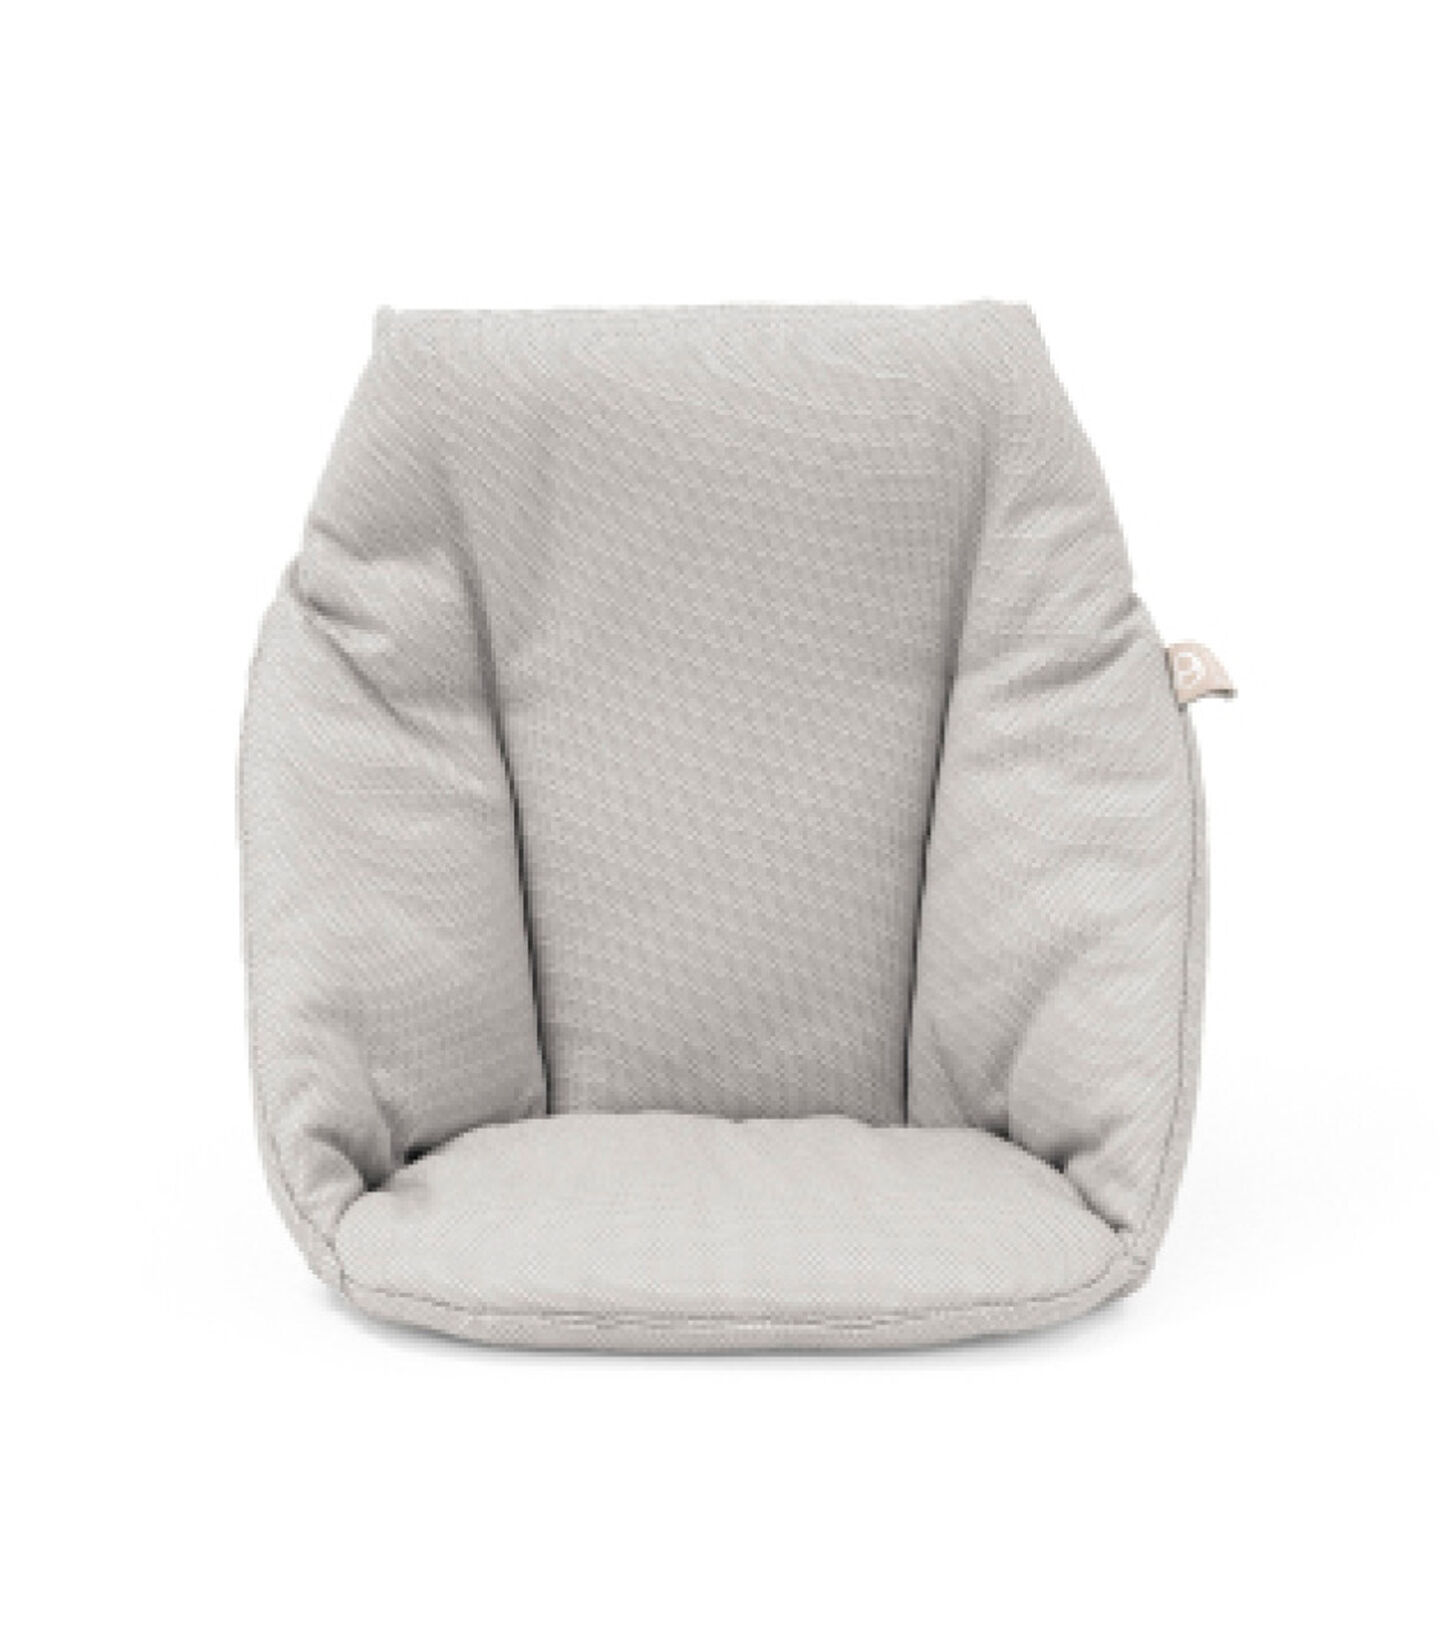 Tripp Trapp® Baby Cushion Timeless Grey OCS, Timeless Grey, mainview view 1